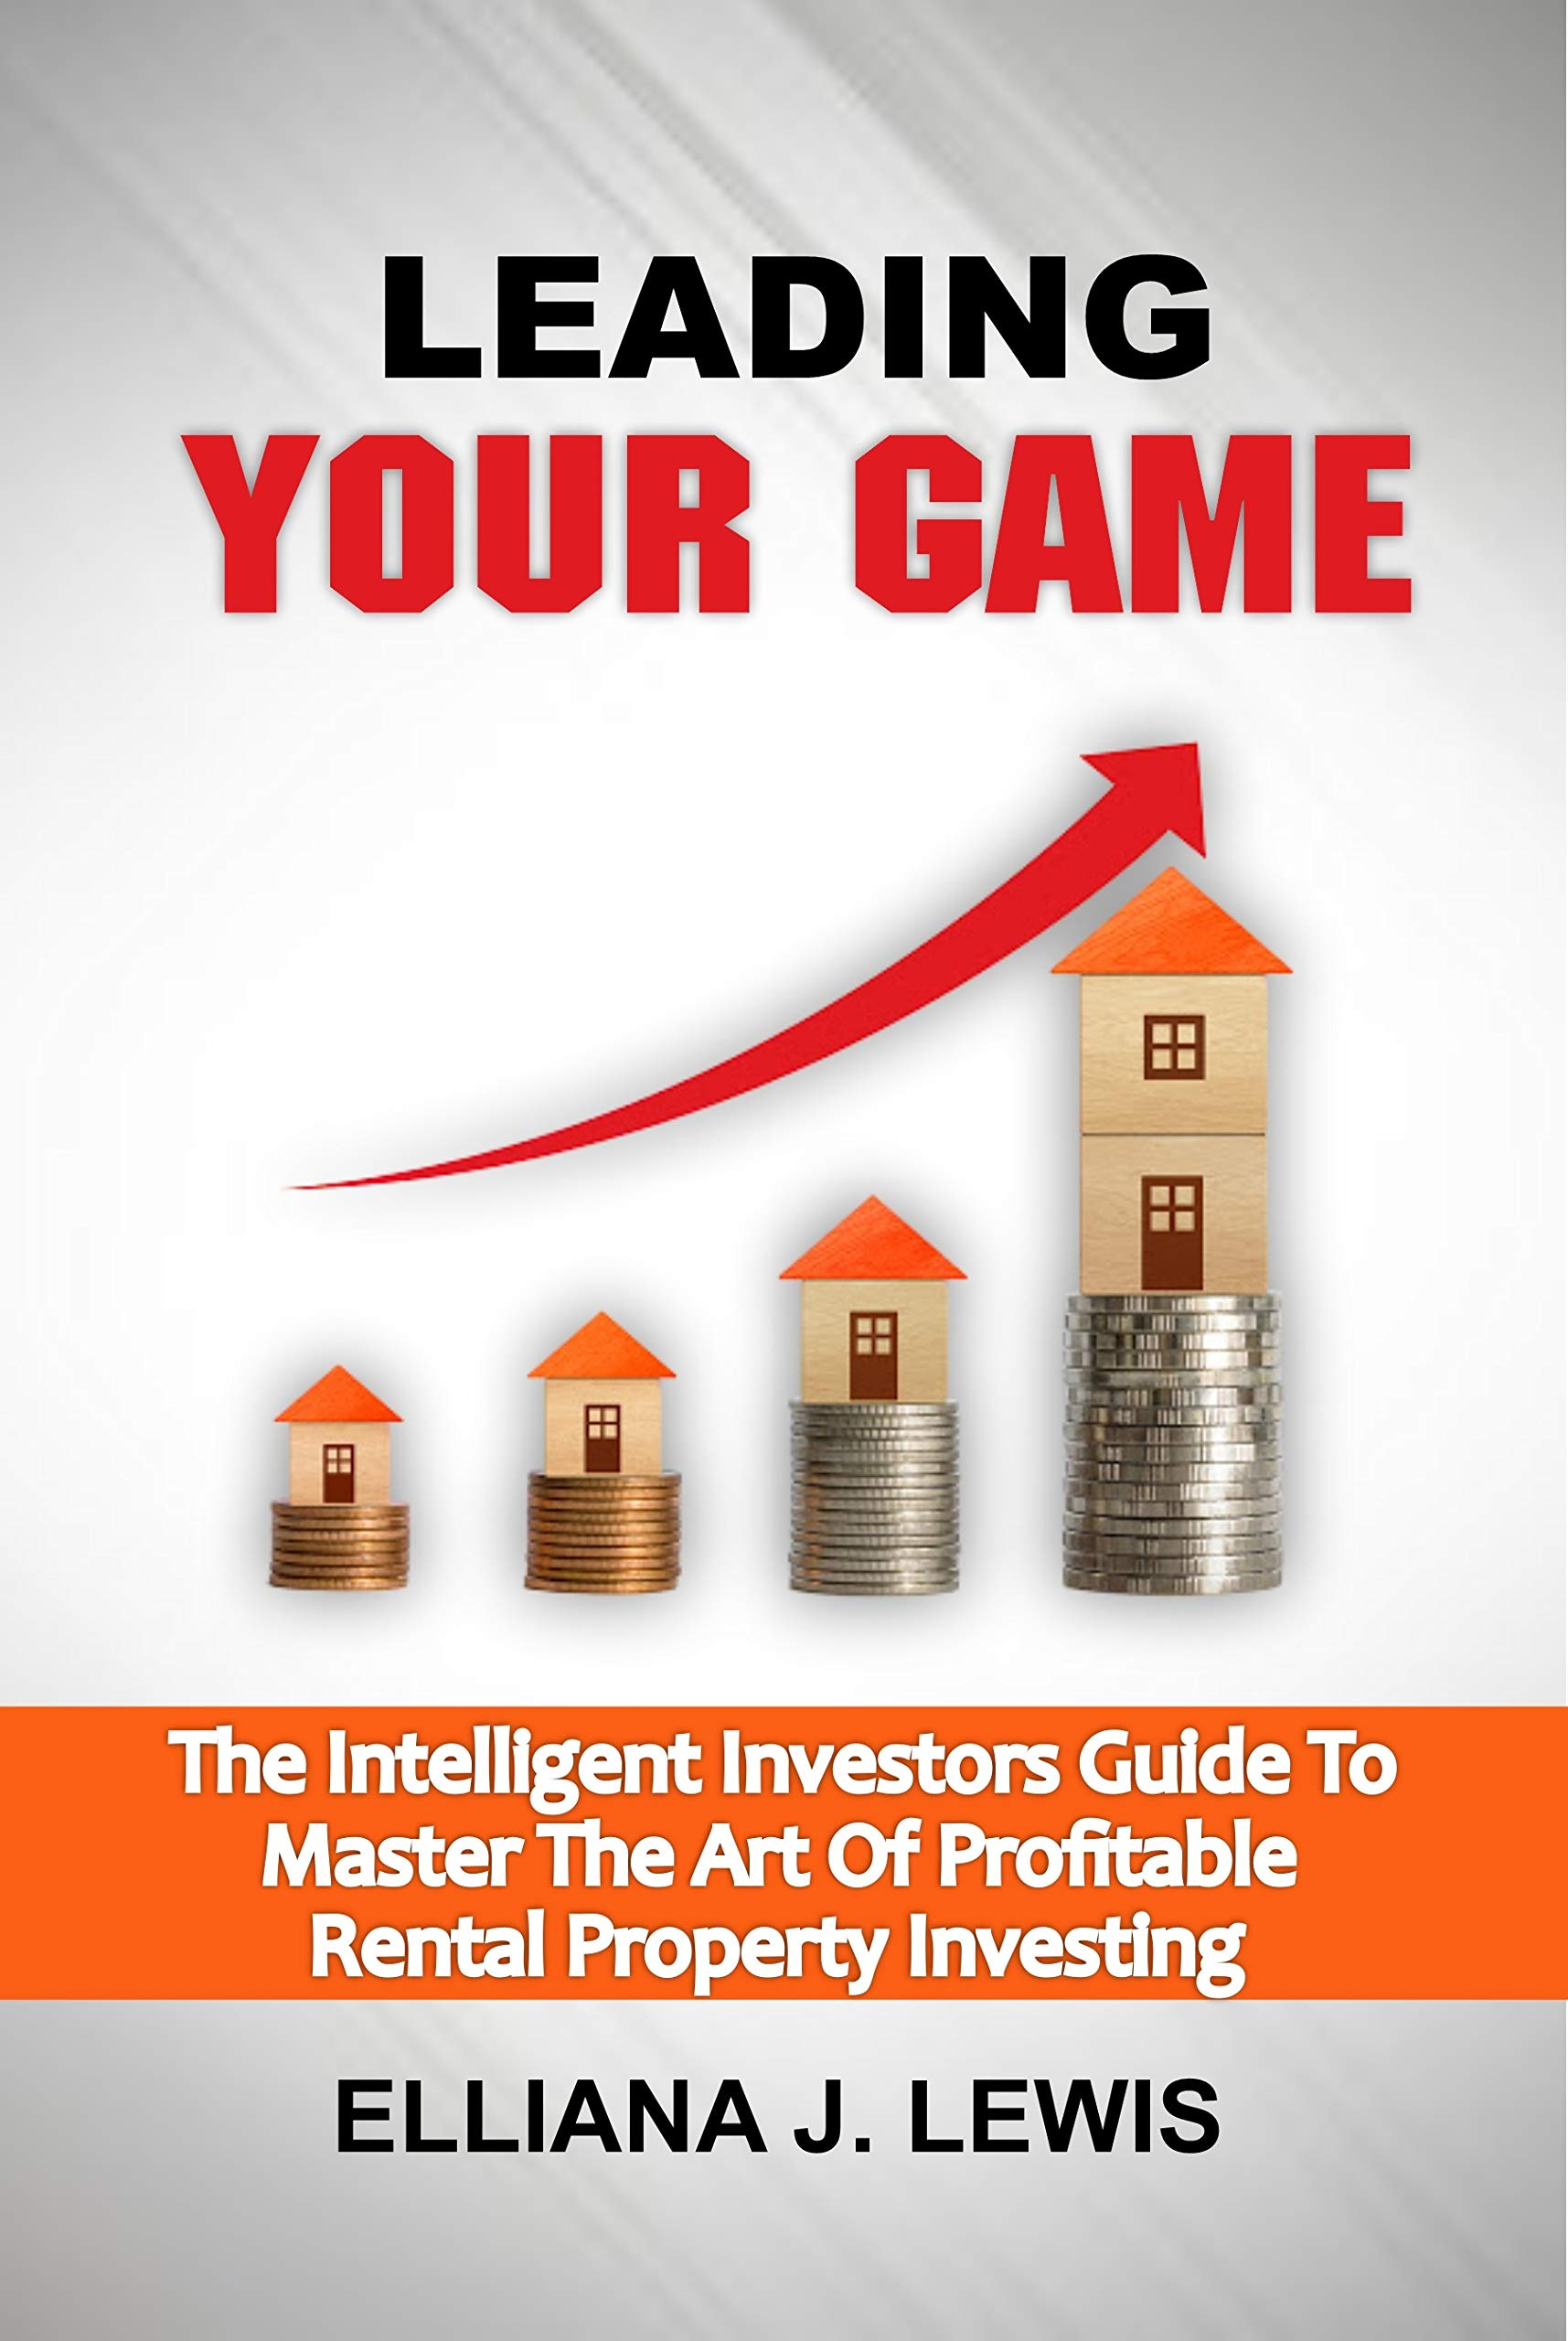 LEADING YOUR GAME: The Intelligent Investors Guide To Master The Art Of Profitable Rental Property Investing